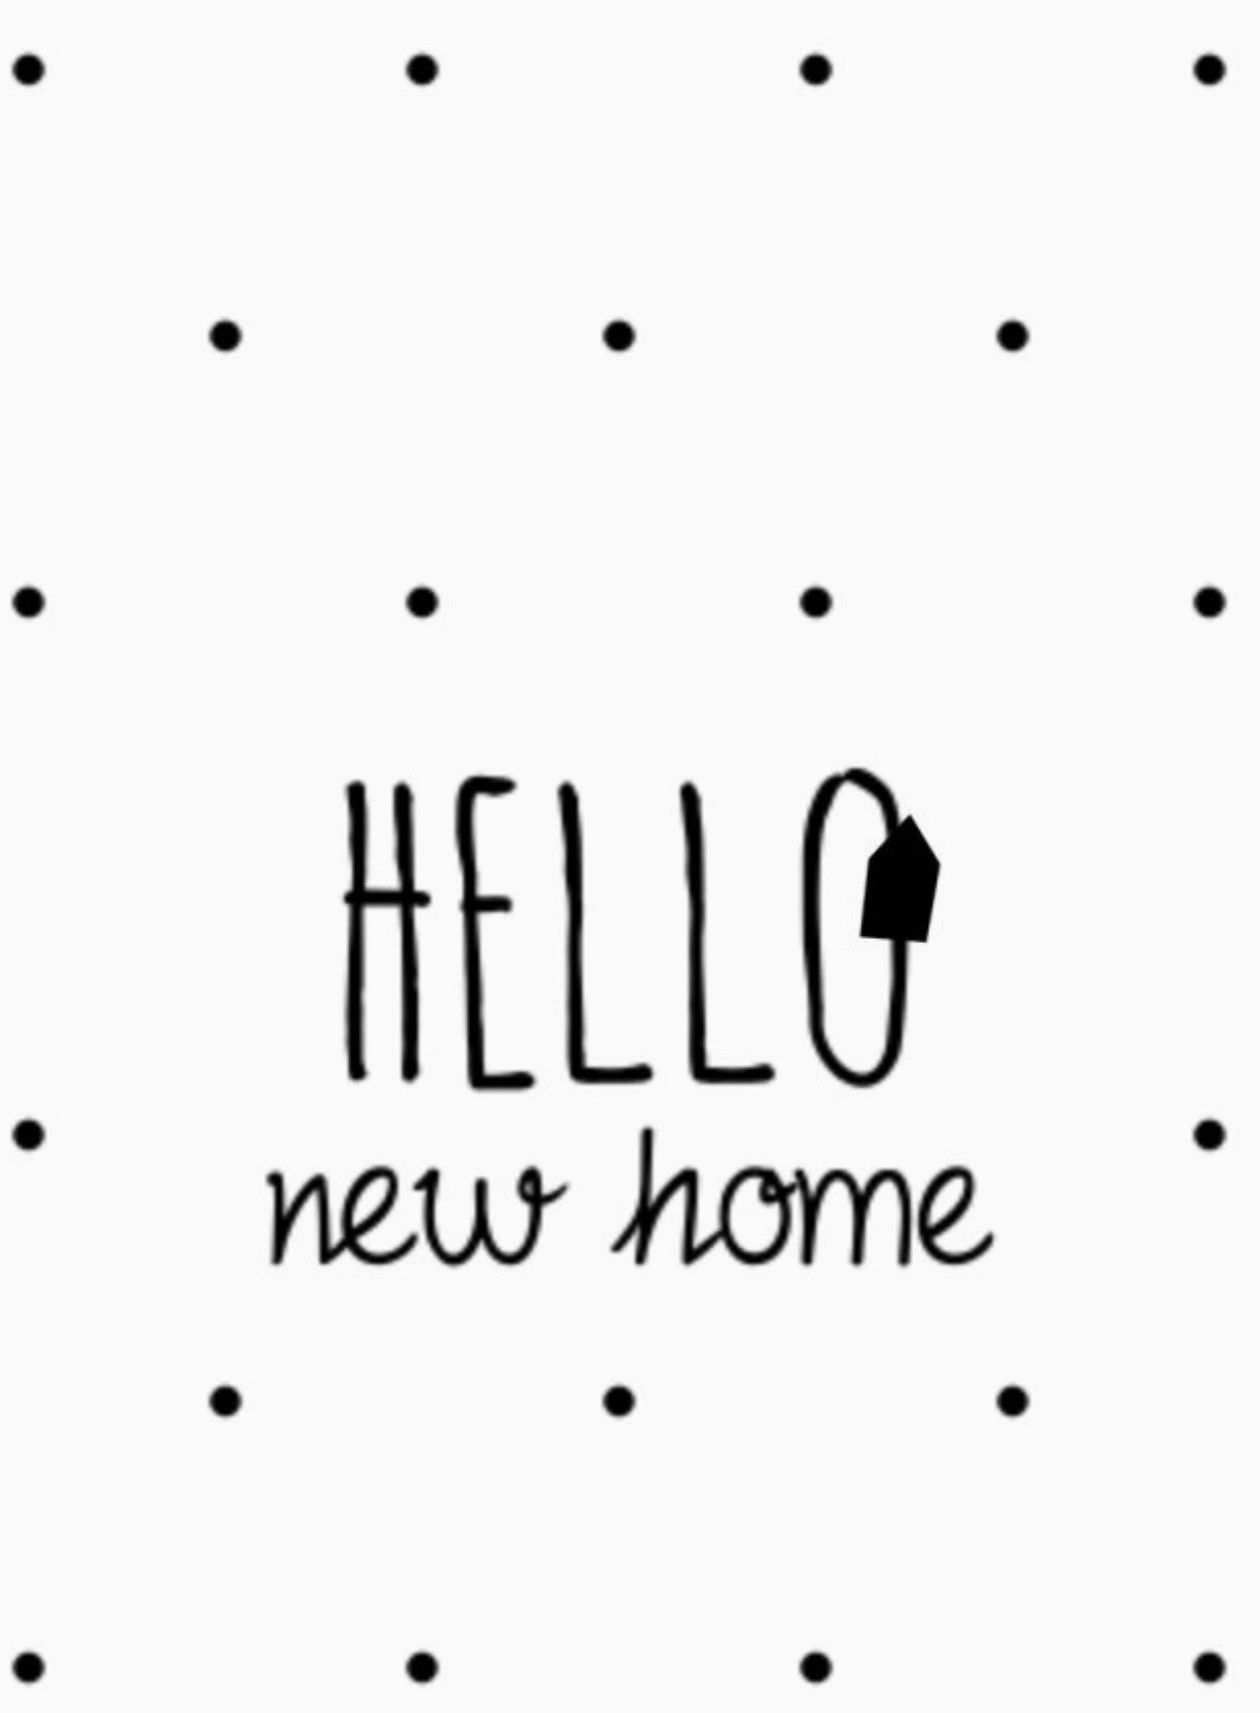 We live here | House and Home | New home quotes, Moving ...